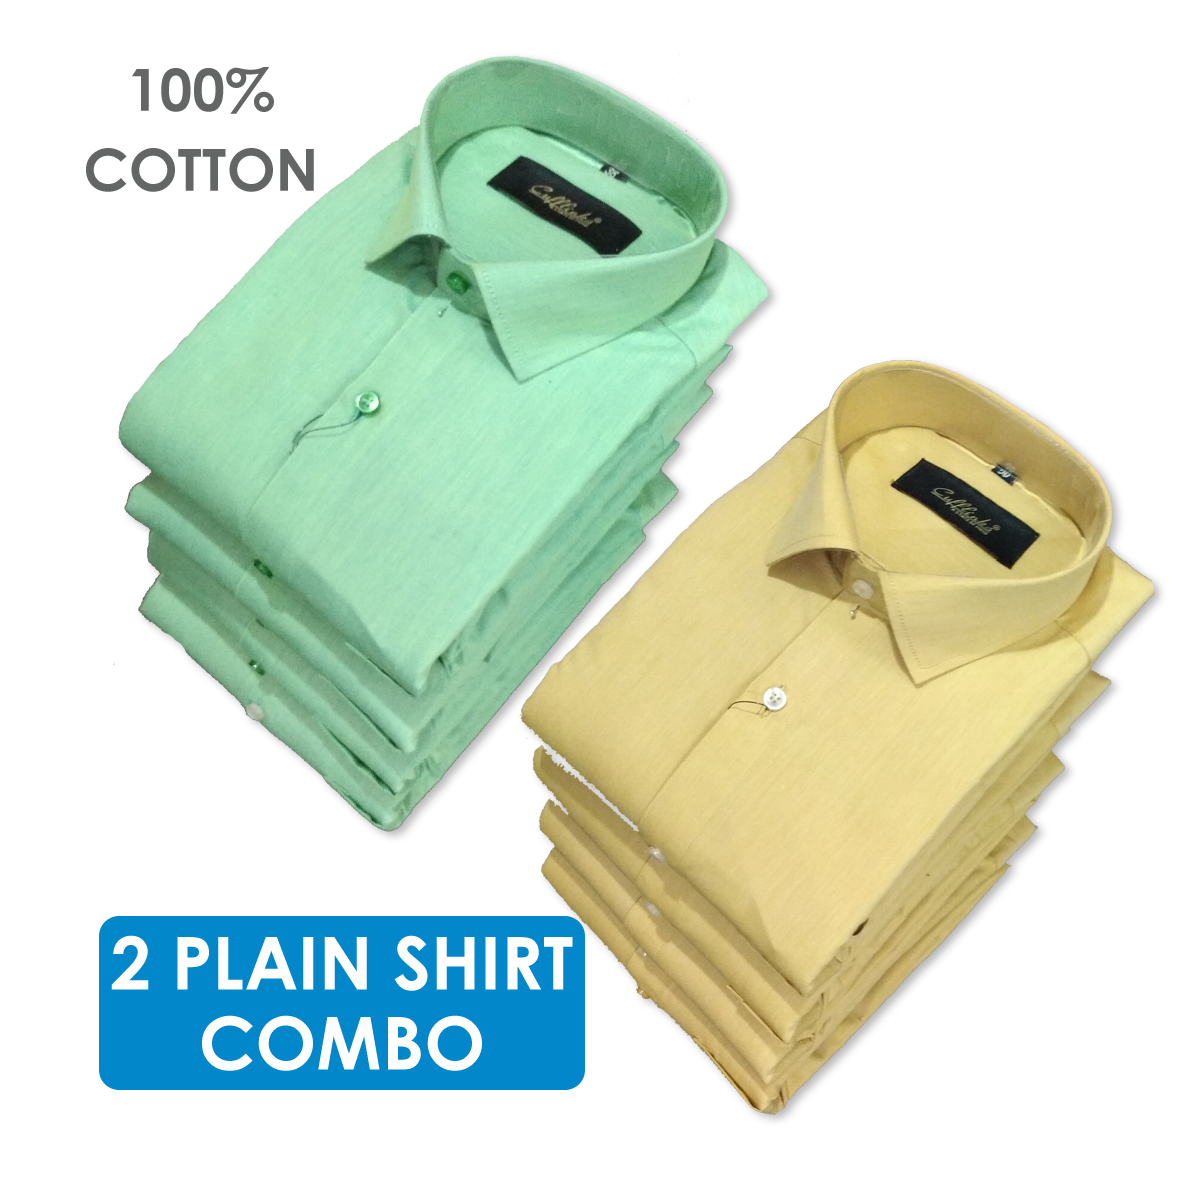 Men's Modern Fit Plain Casual Shirt - 2 Pieces Combo